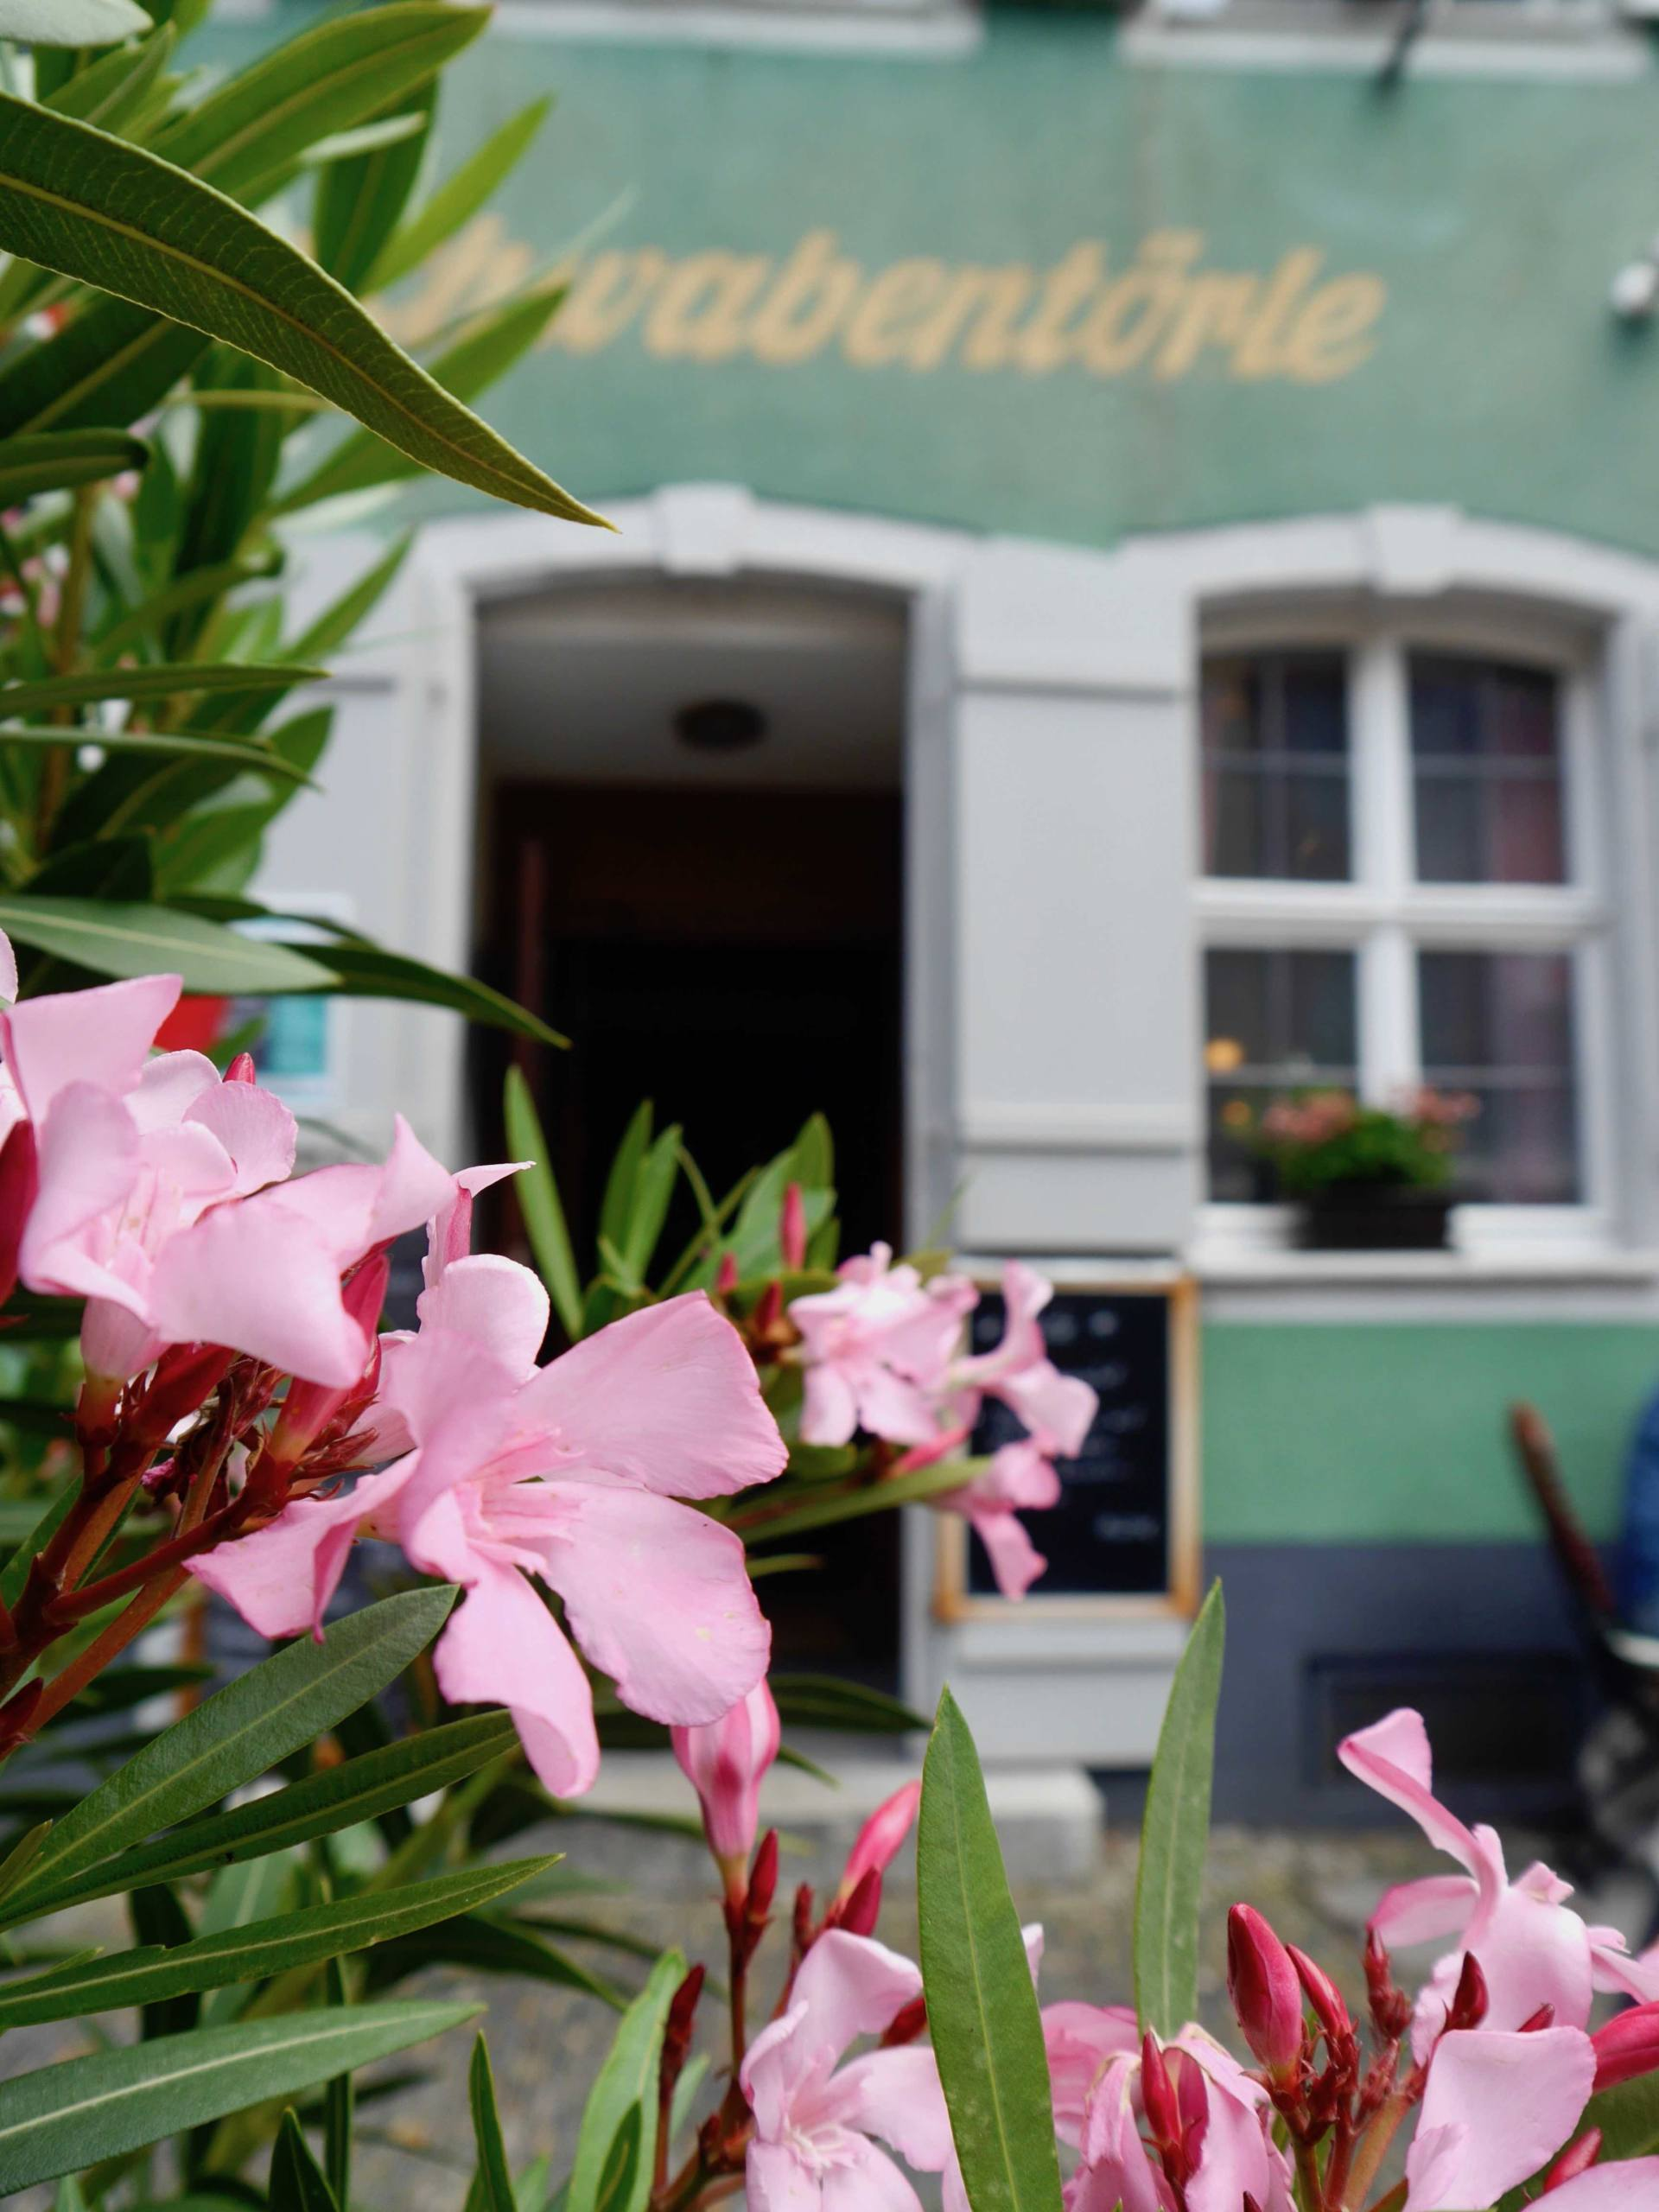 Flowers | Most Instagrammable Places in Freiburg